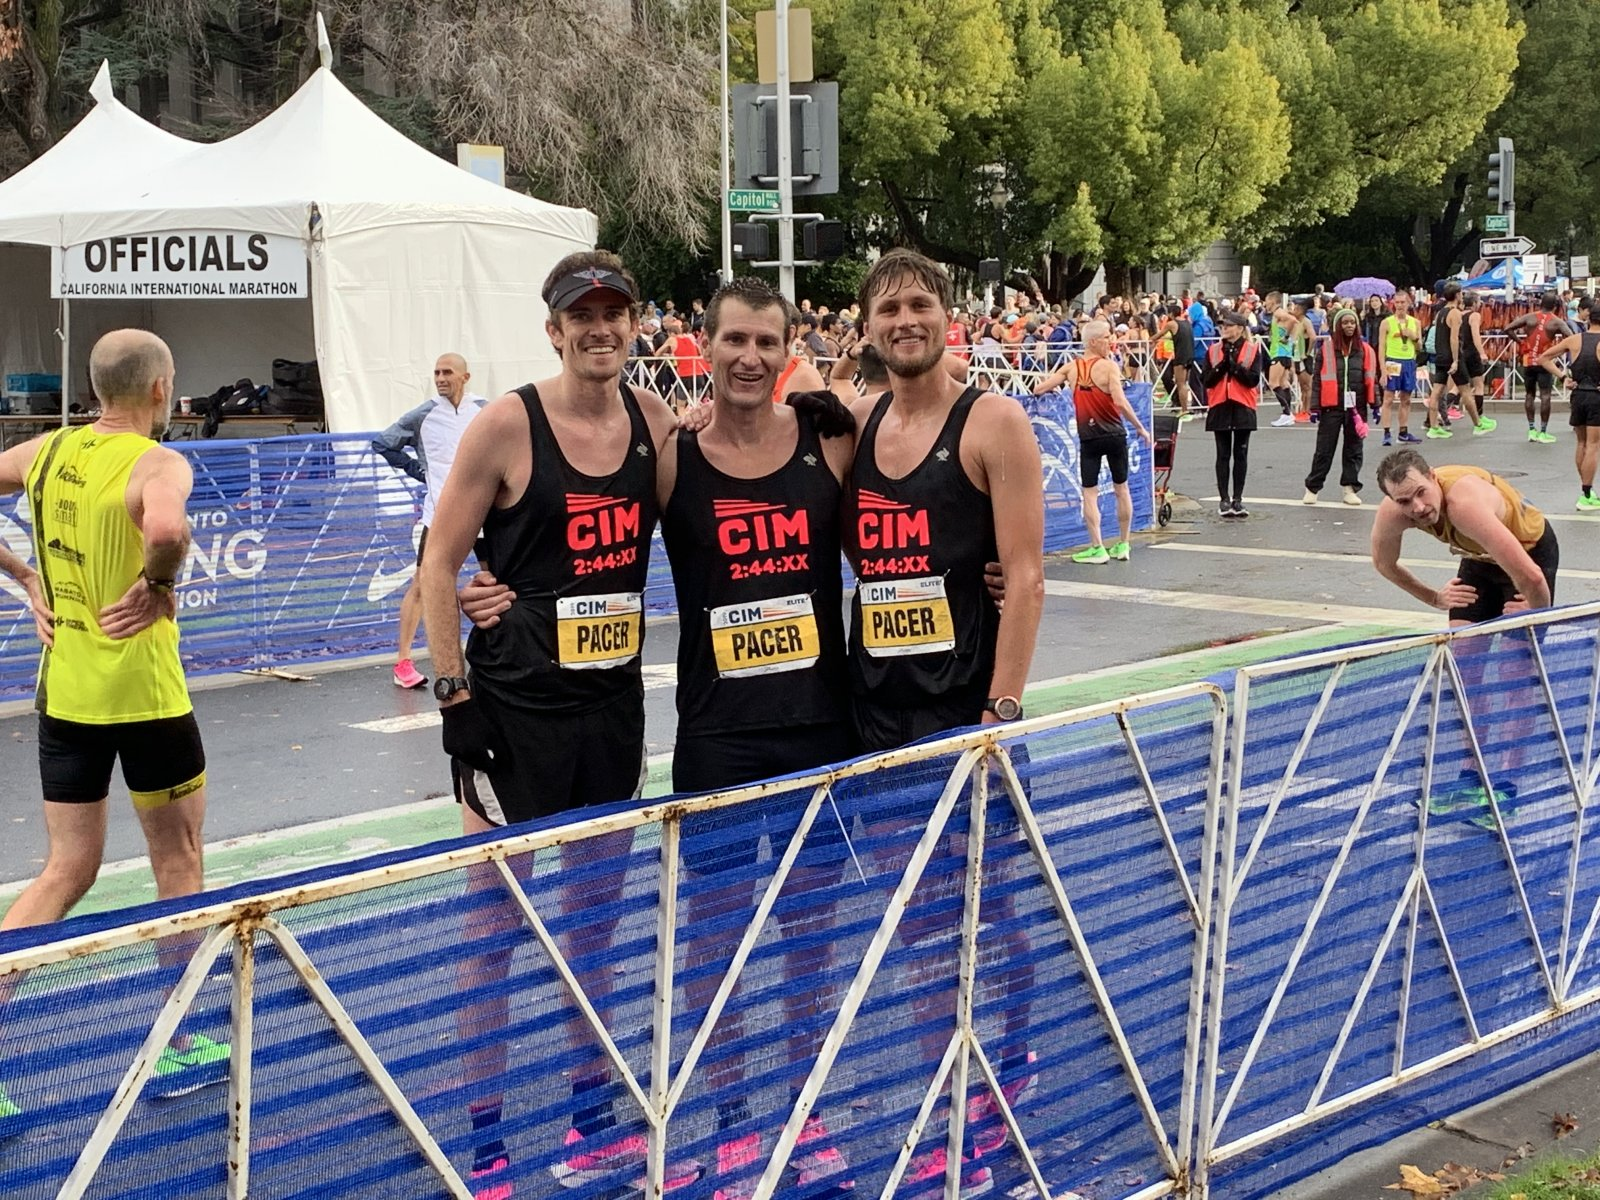 3 CIM pacers with arms around each other after the finish line